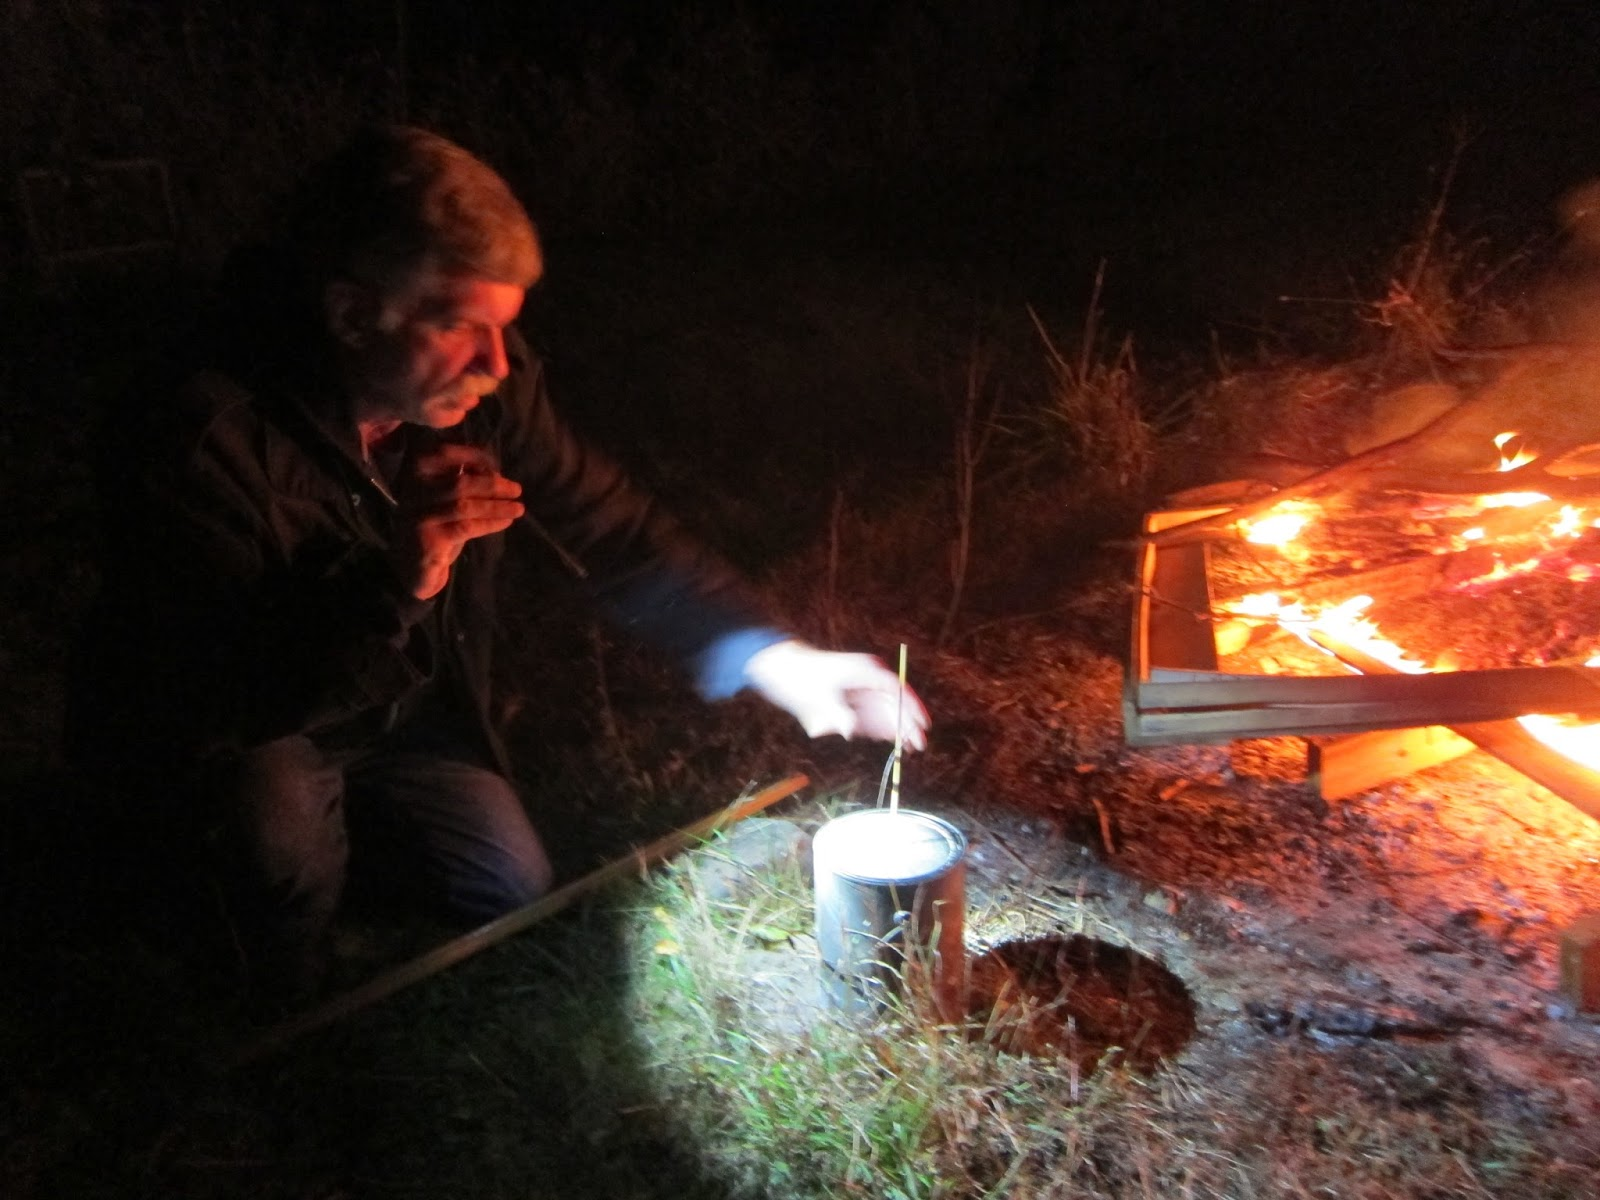 Suustainable Making Charcoal With Open Fire